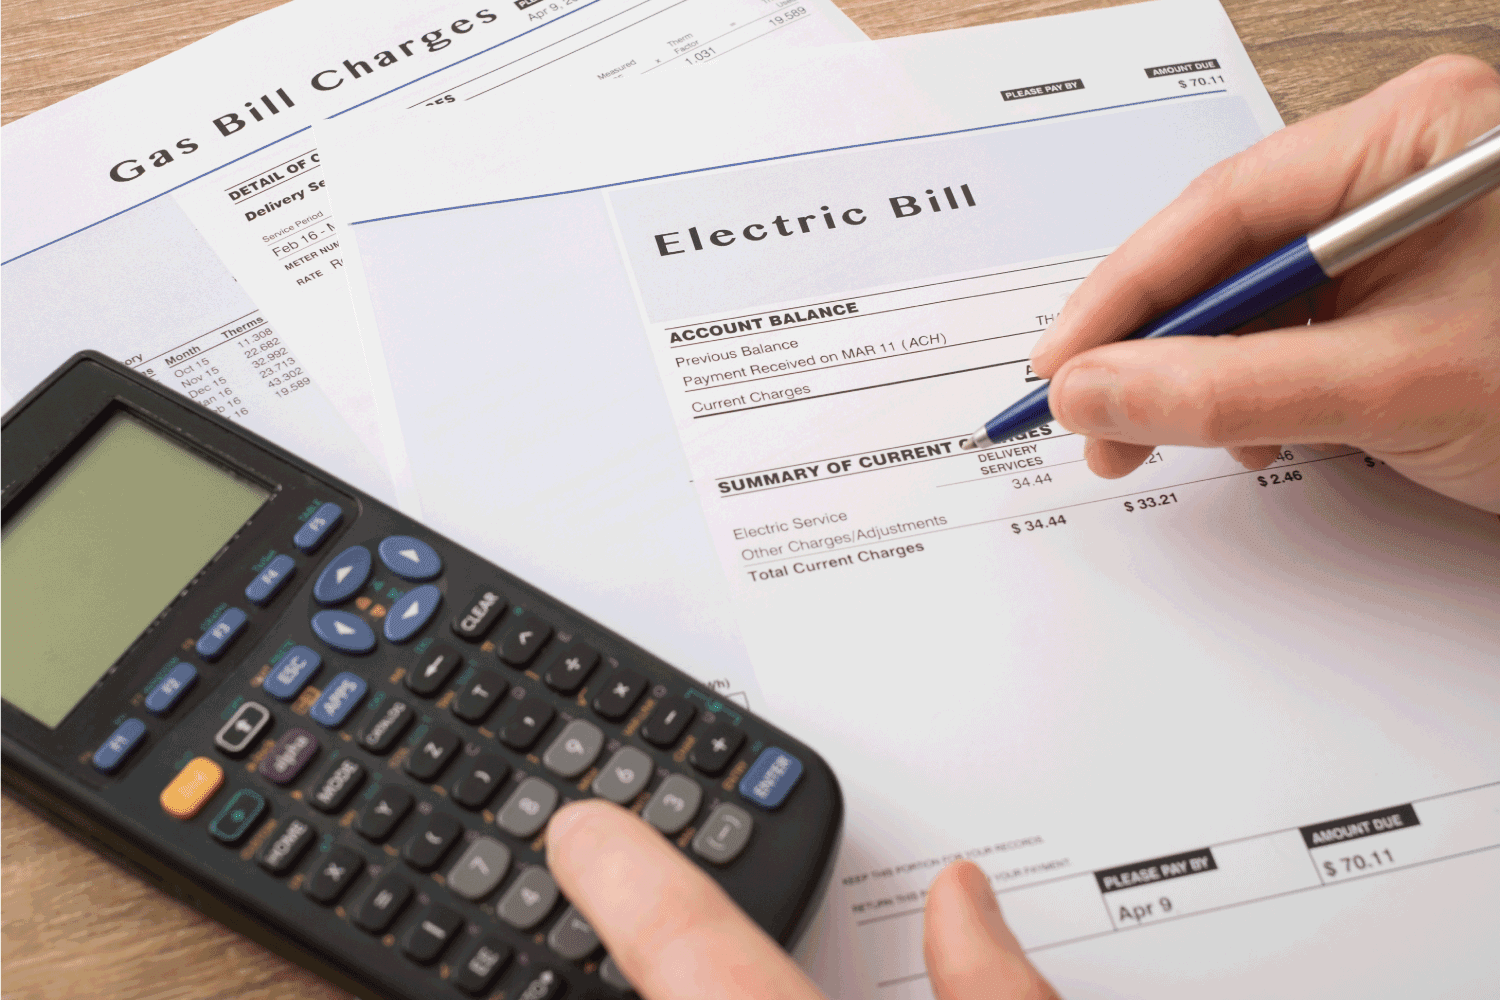 Electric bill charges paper form on the table